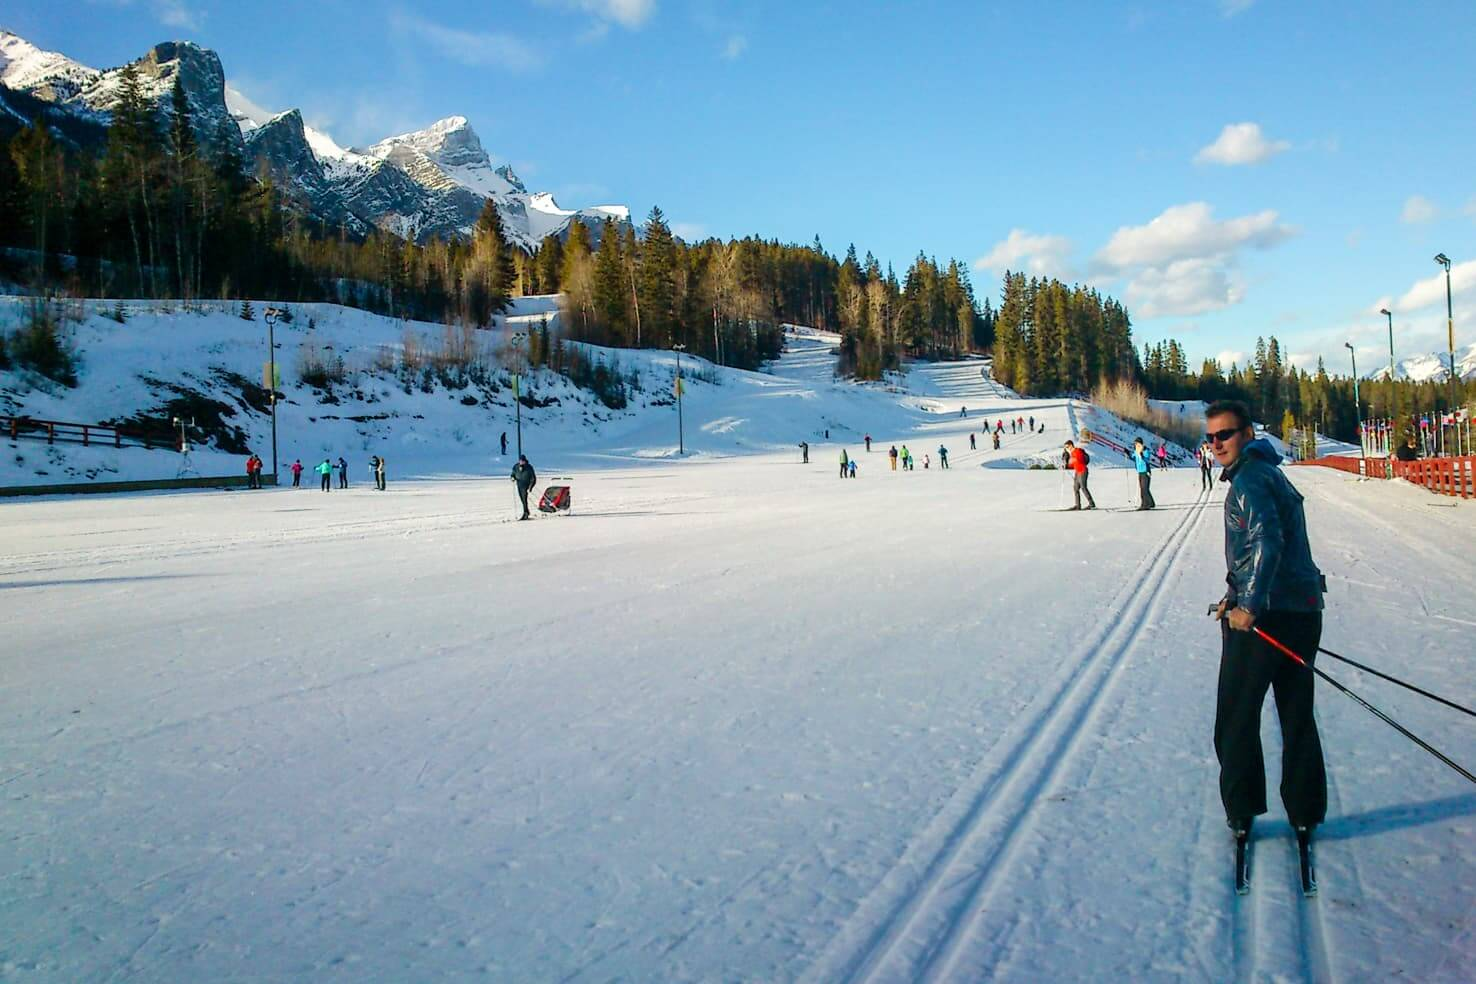 100 best things to do in Banff National Park, Canada - Bike or cross country ski in Canmore Nordic Centre